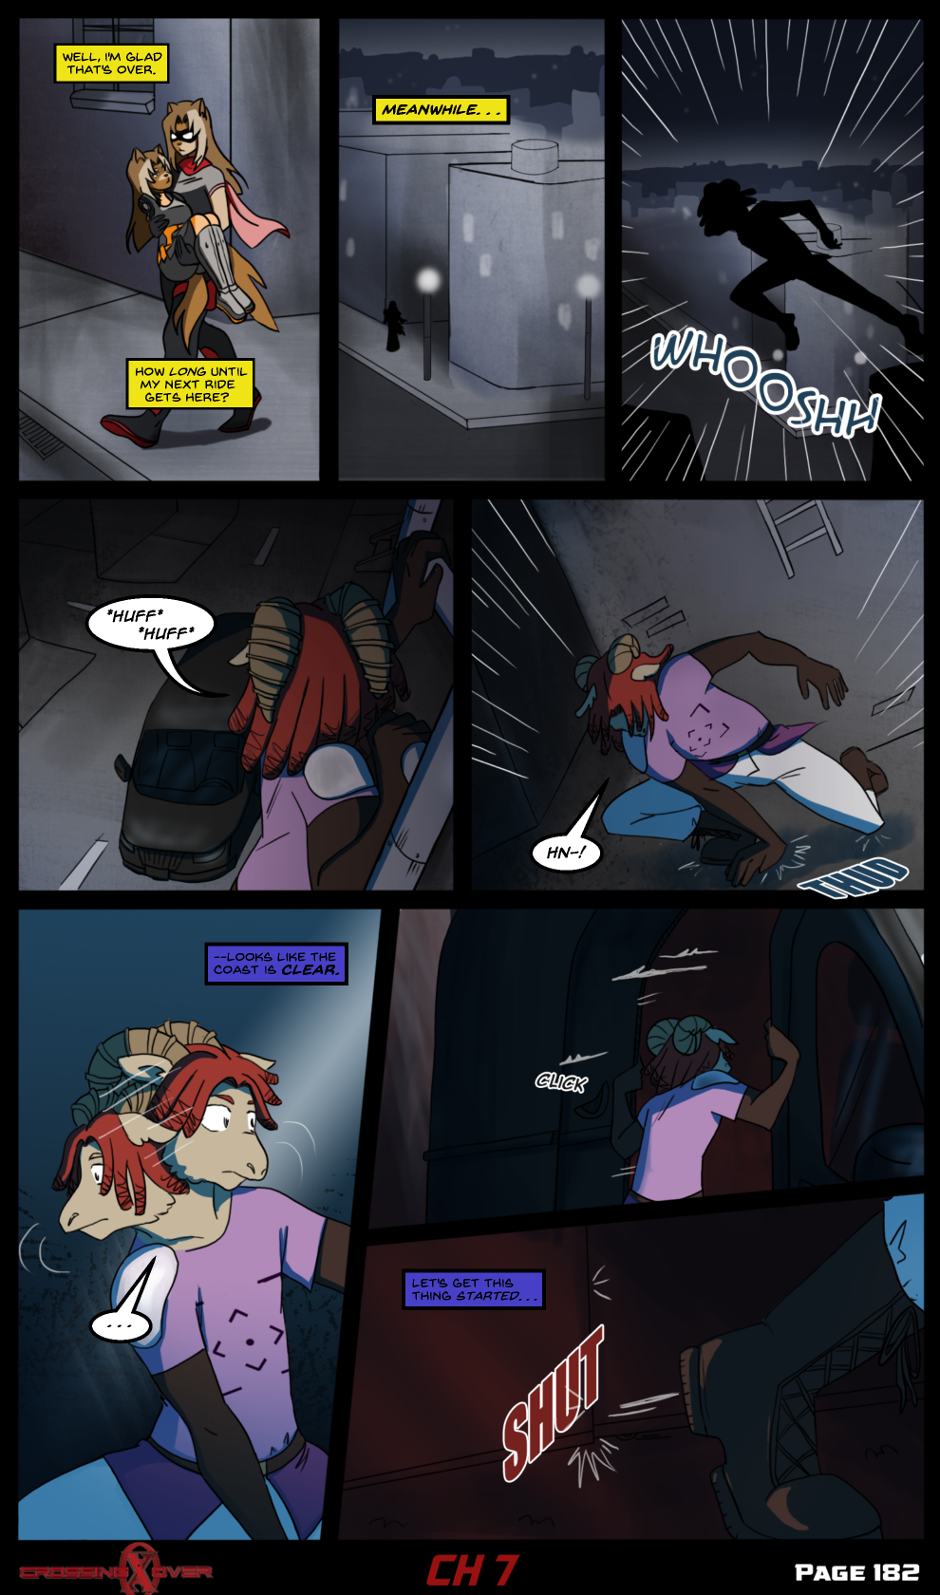 Page 182 (Ch 7)